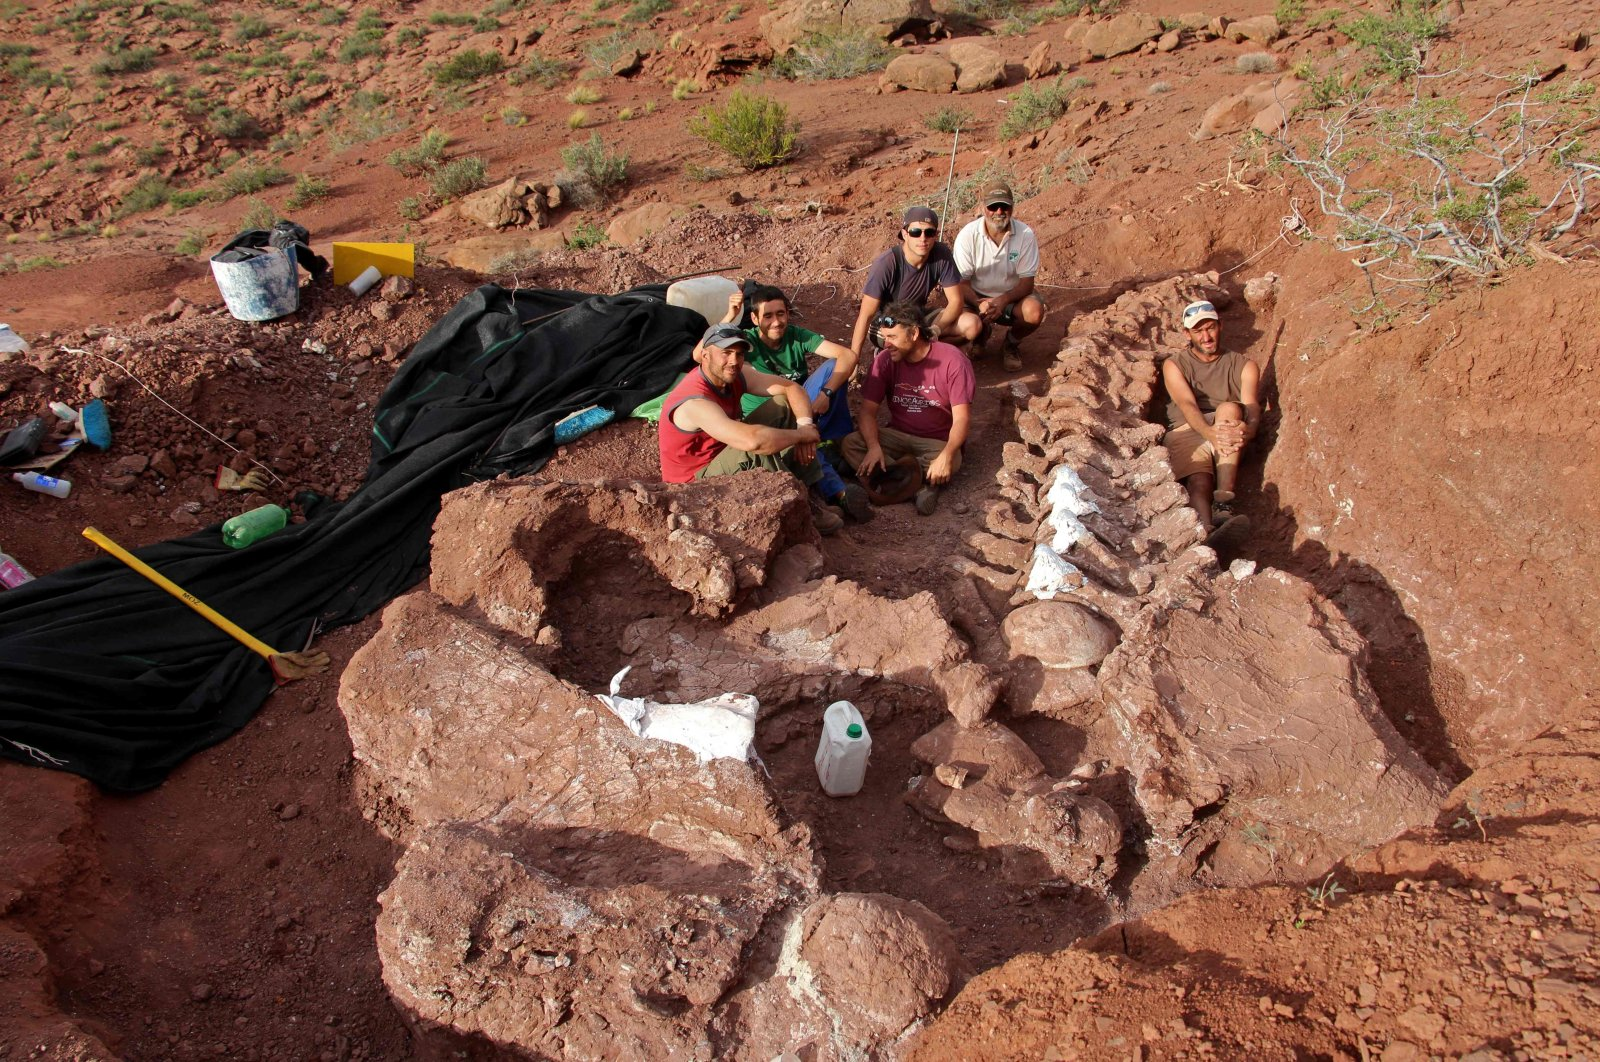 In this photo released by the CTyS-UNLaM Science Outreach Agency, paleontologists sit during an excavation in which 98-million-year-old fossils were found, at the Candeleros Formation in the Neuquen River Valley in southwest Argentina, Jan. 20, 2021. (Jose Luis Carballido/CTyS-UNLaM via AFP)